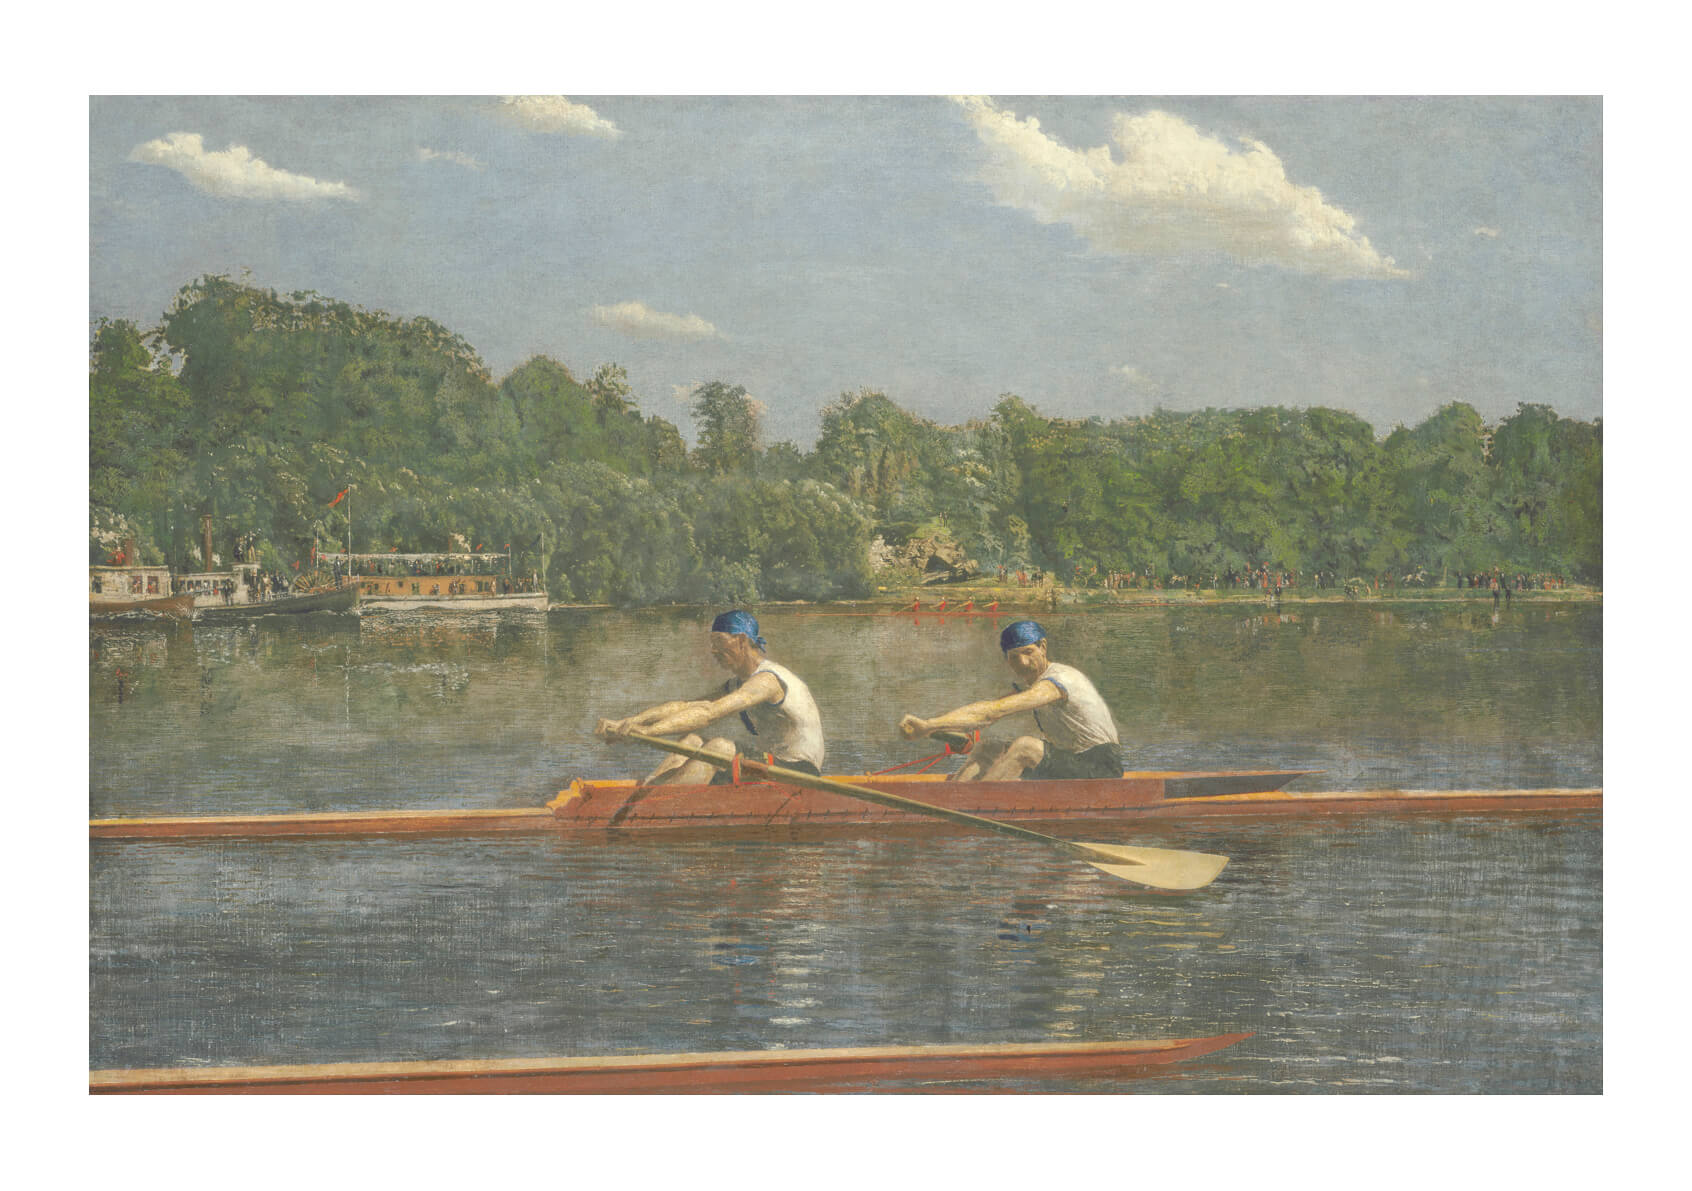 Thomas Cowperthwait Eakins - The Biglin Brothers Racing